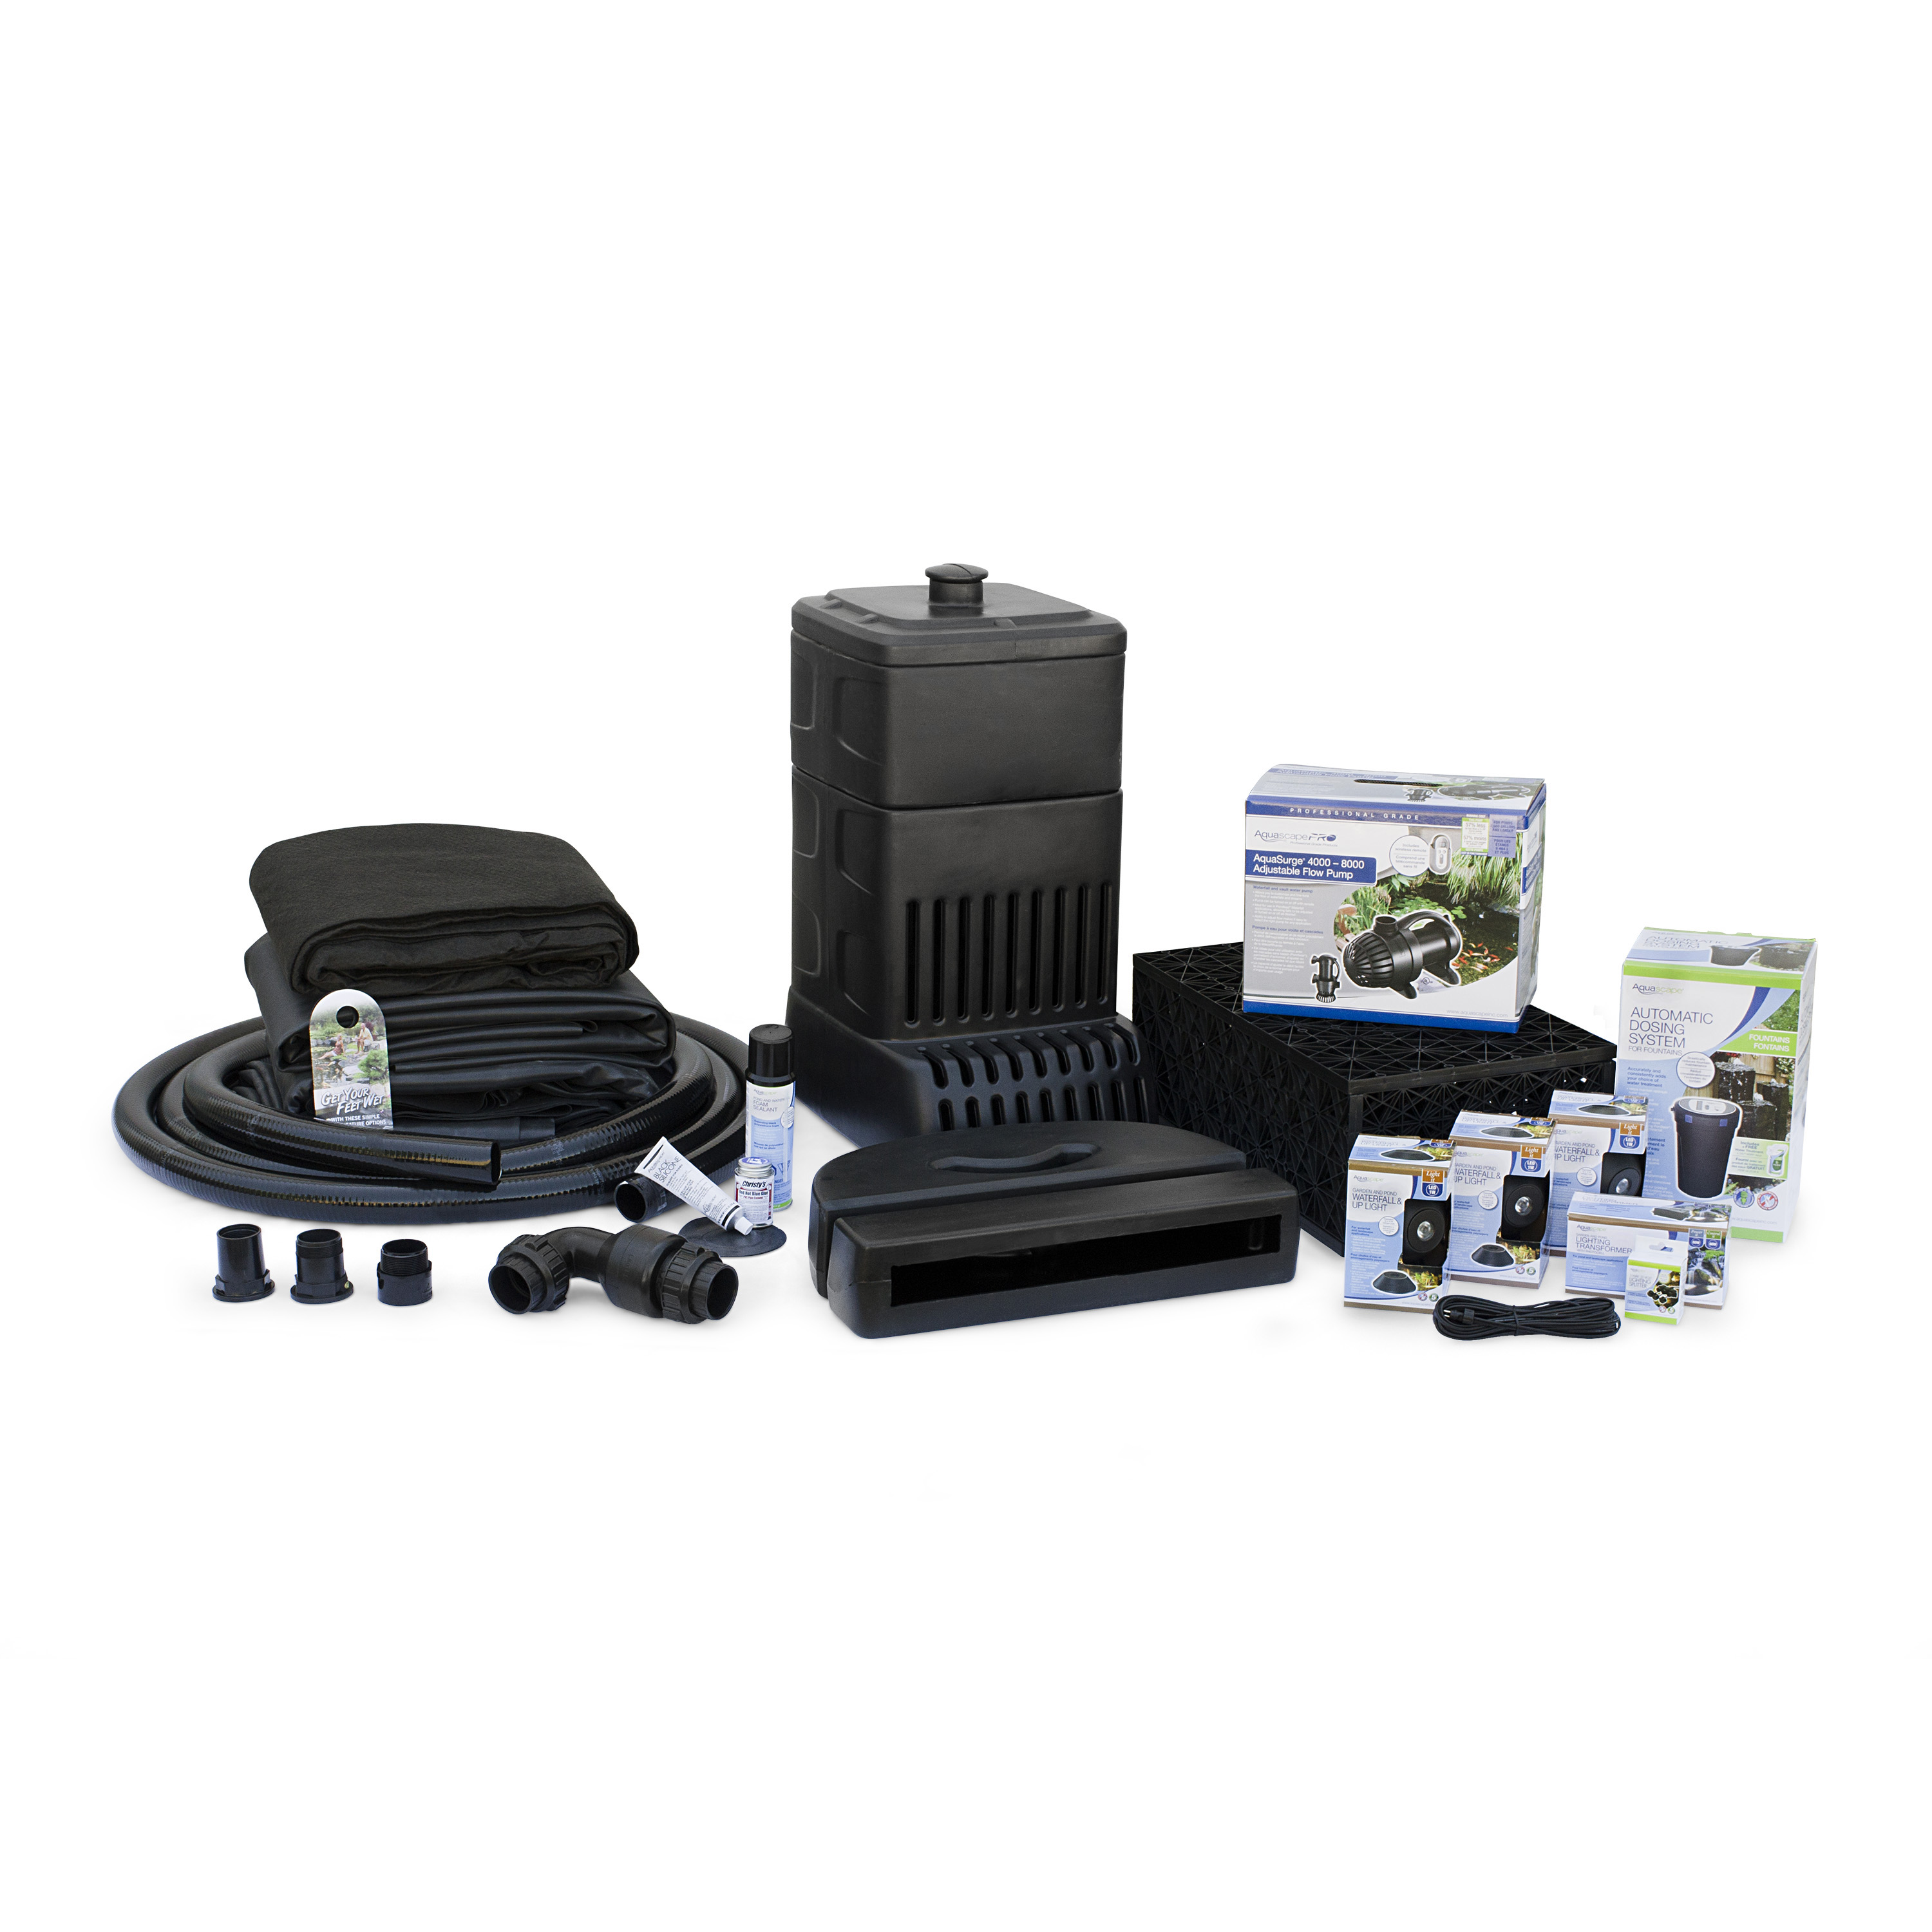 Pond And Fountain Pumps 139921: Aquascape Pro #20004 7500 Gph ..